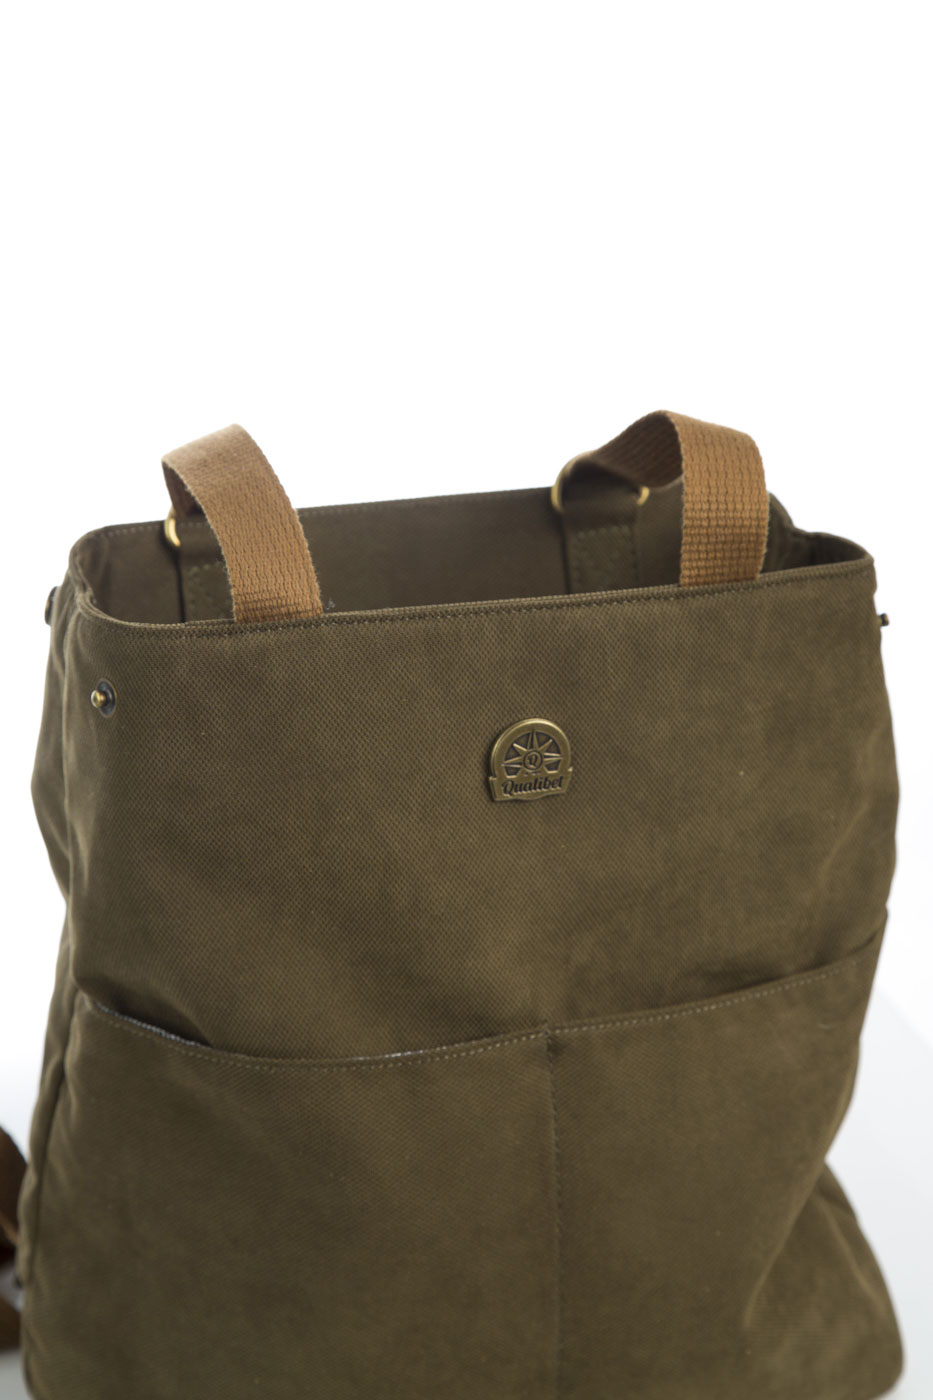 Elemental Bag Vegan (Green)